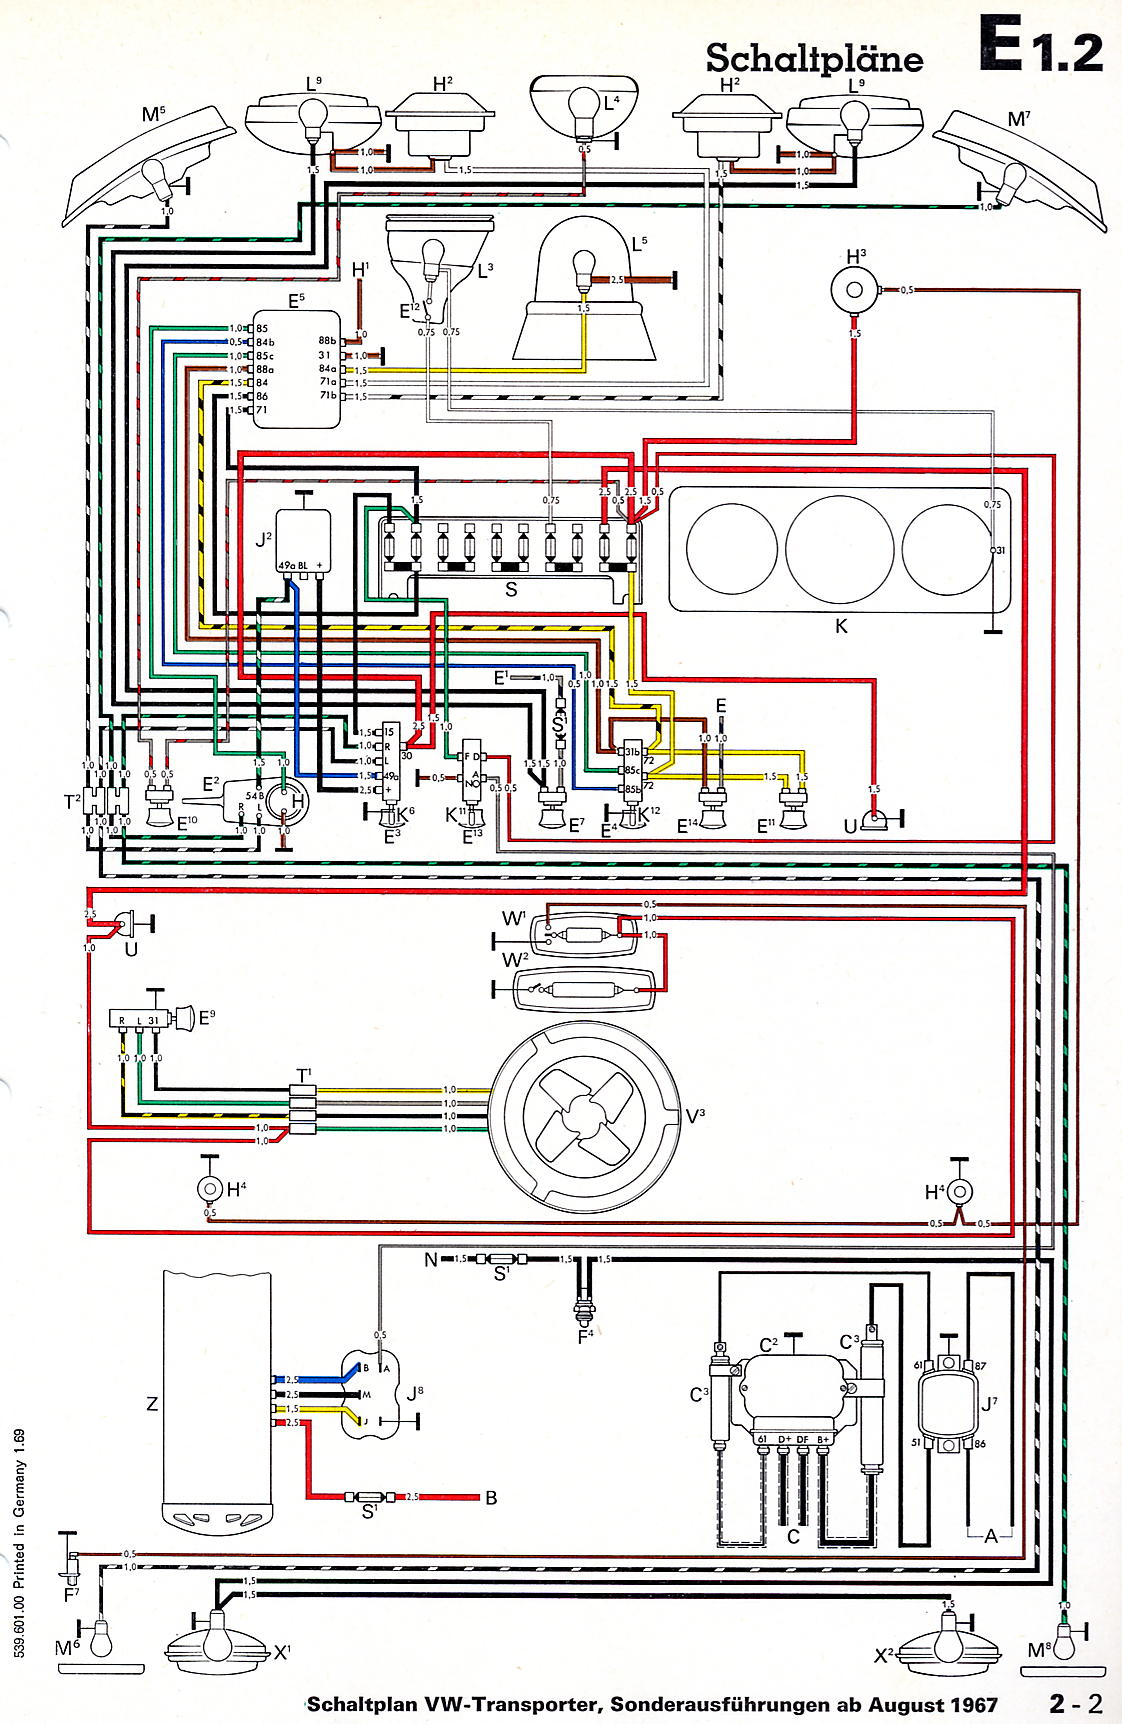 vw transporter t4 fuse box schematic wiring library Volkswagen Engine Diagram 1 � 2